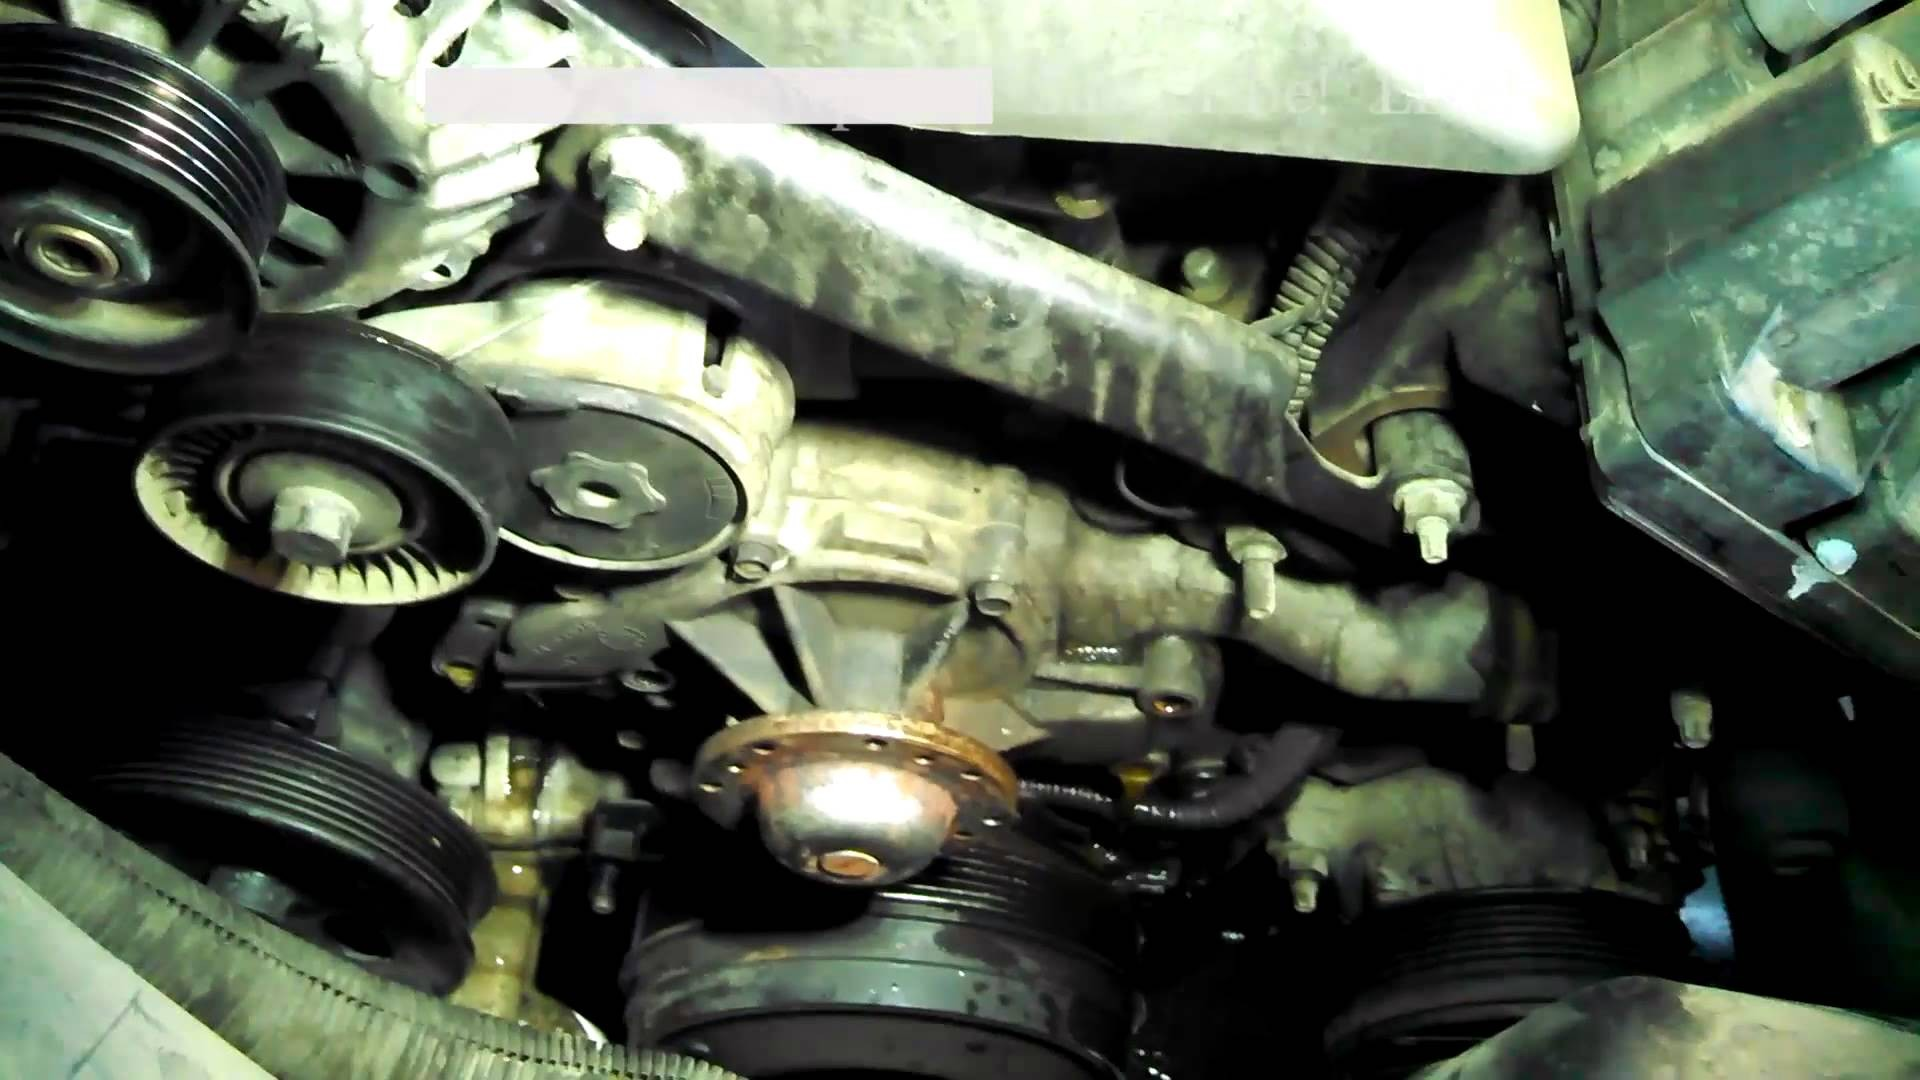 1999 Chevy Lumina Engine Diagram Water Pump Replacement 1998 Chevrolet  Lumina 3 8l V6 Install Remove